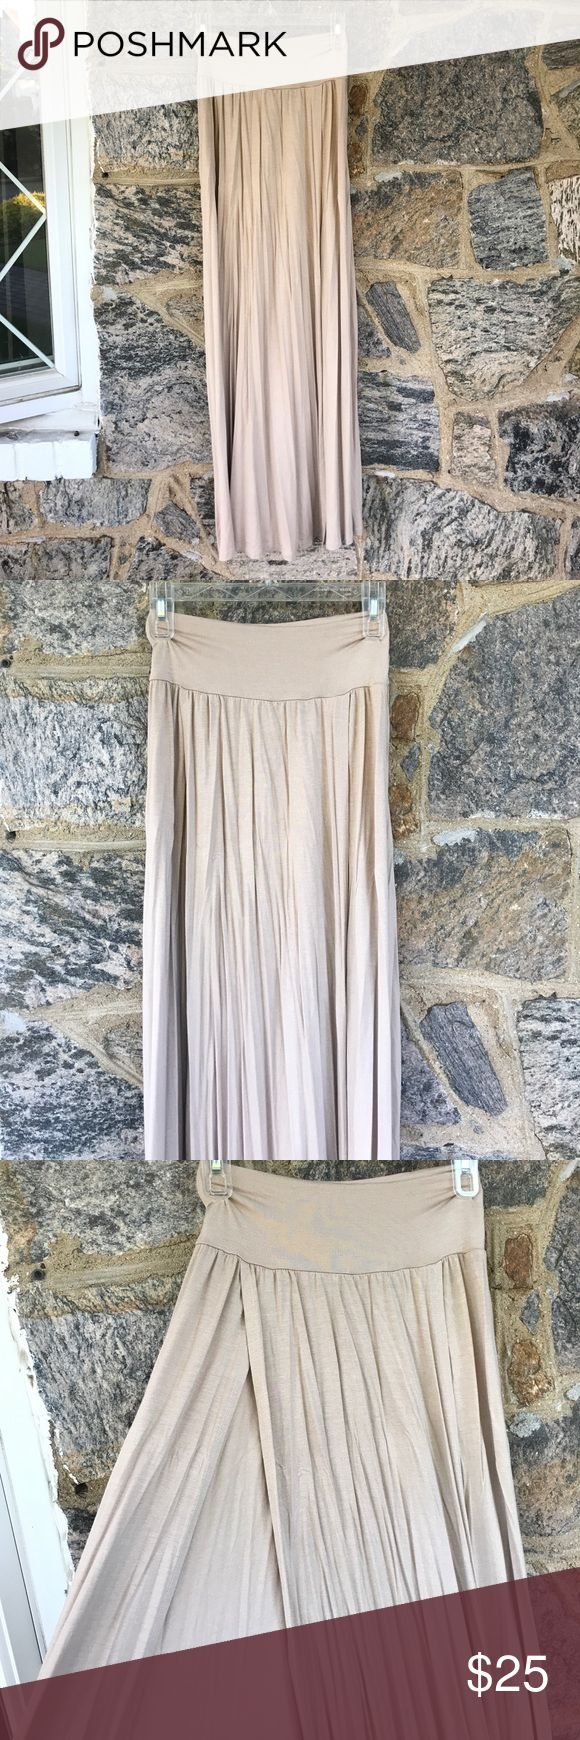 Tan Maxi Skirt with Double Slit Tan Maxi Skirt with Double Slit. Cotton Material. Never worn! Perfect Condition! Great for Summer!! 🌞🌊 Skirts Maxi